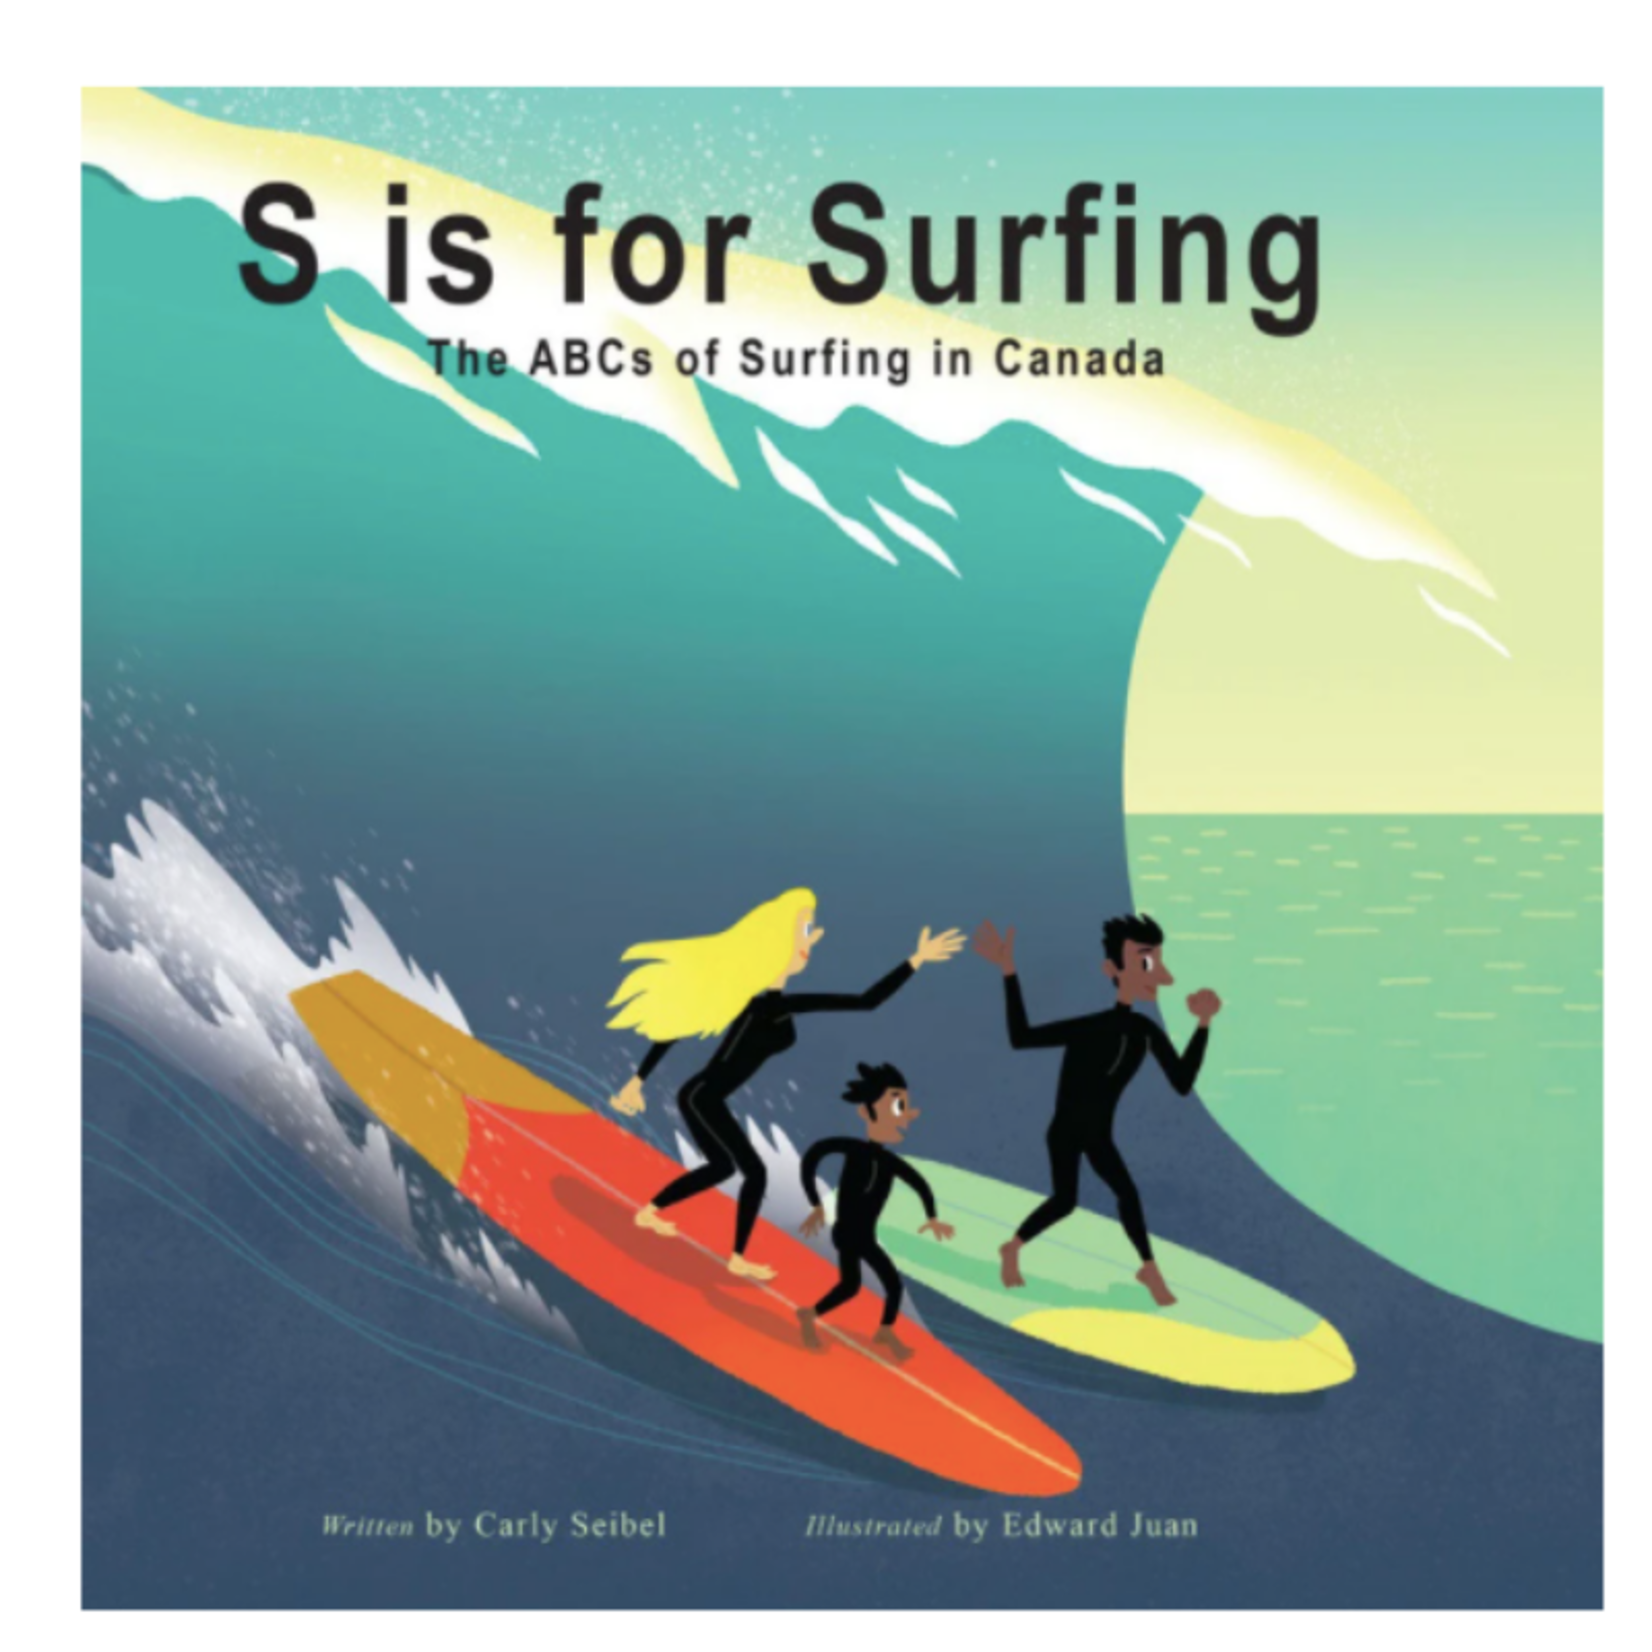 Local S Is for Surfing - Kids Novel